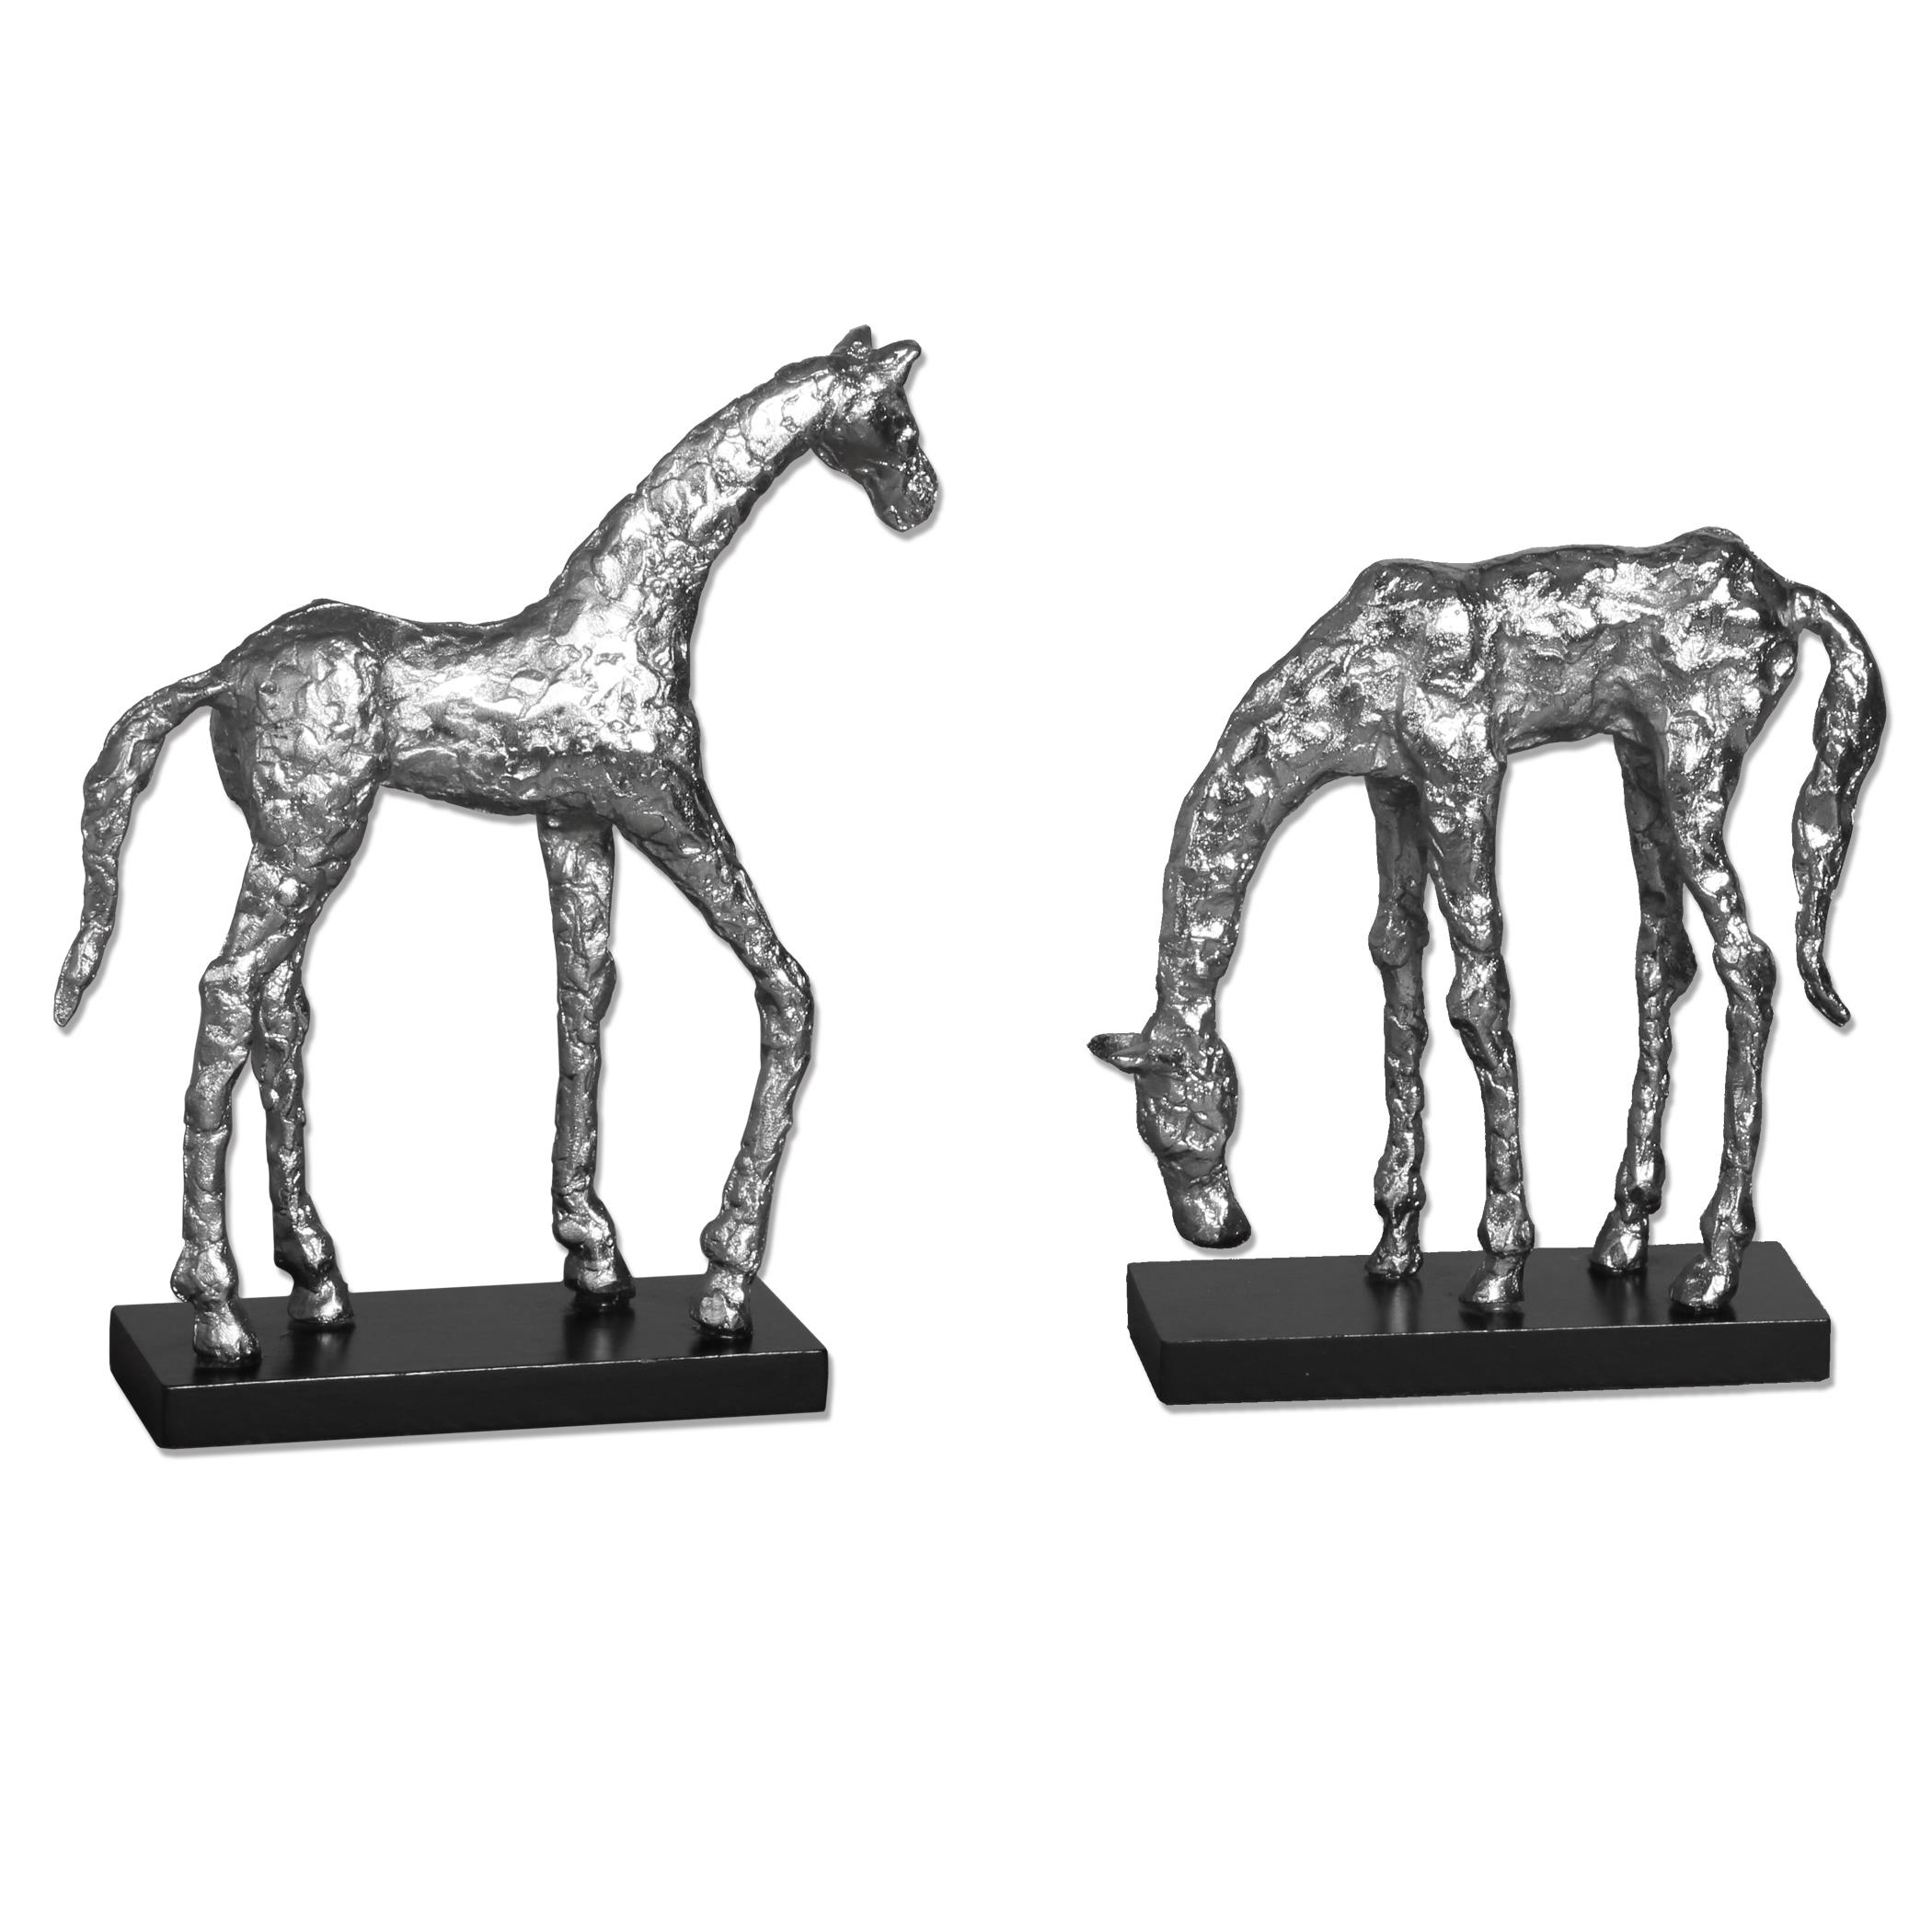 Uttermost Accessories Let's Graze Horse Statues, S/2 - Item Number: 19967